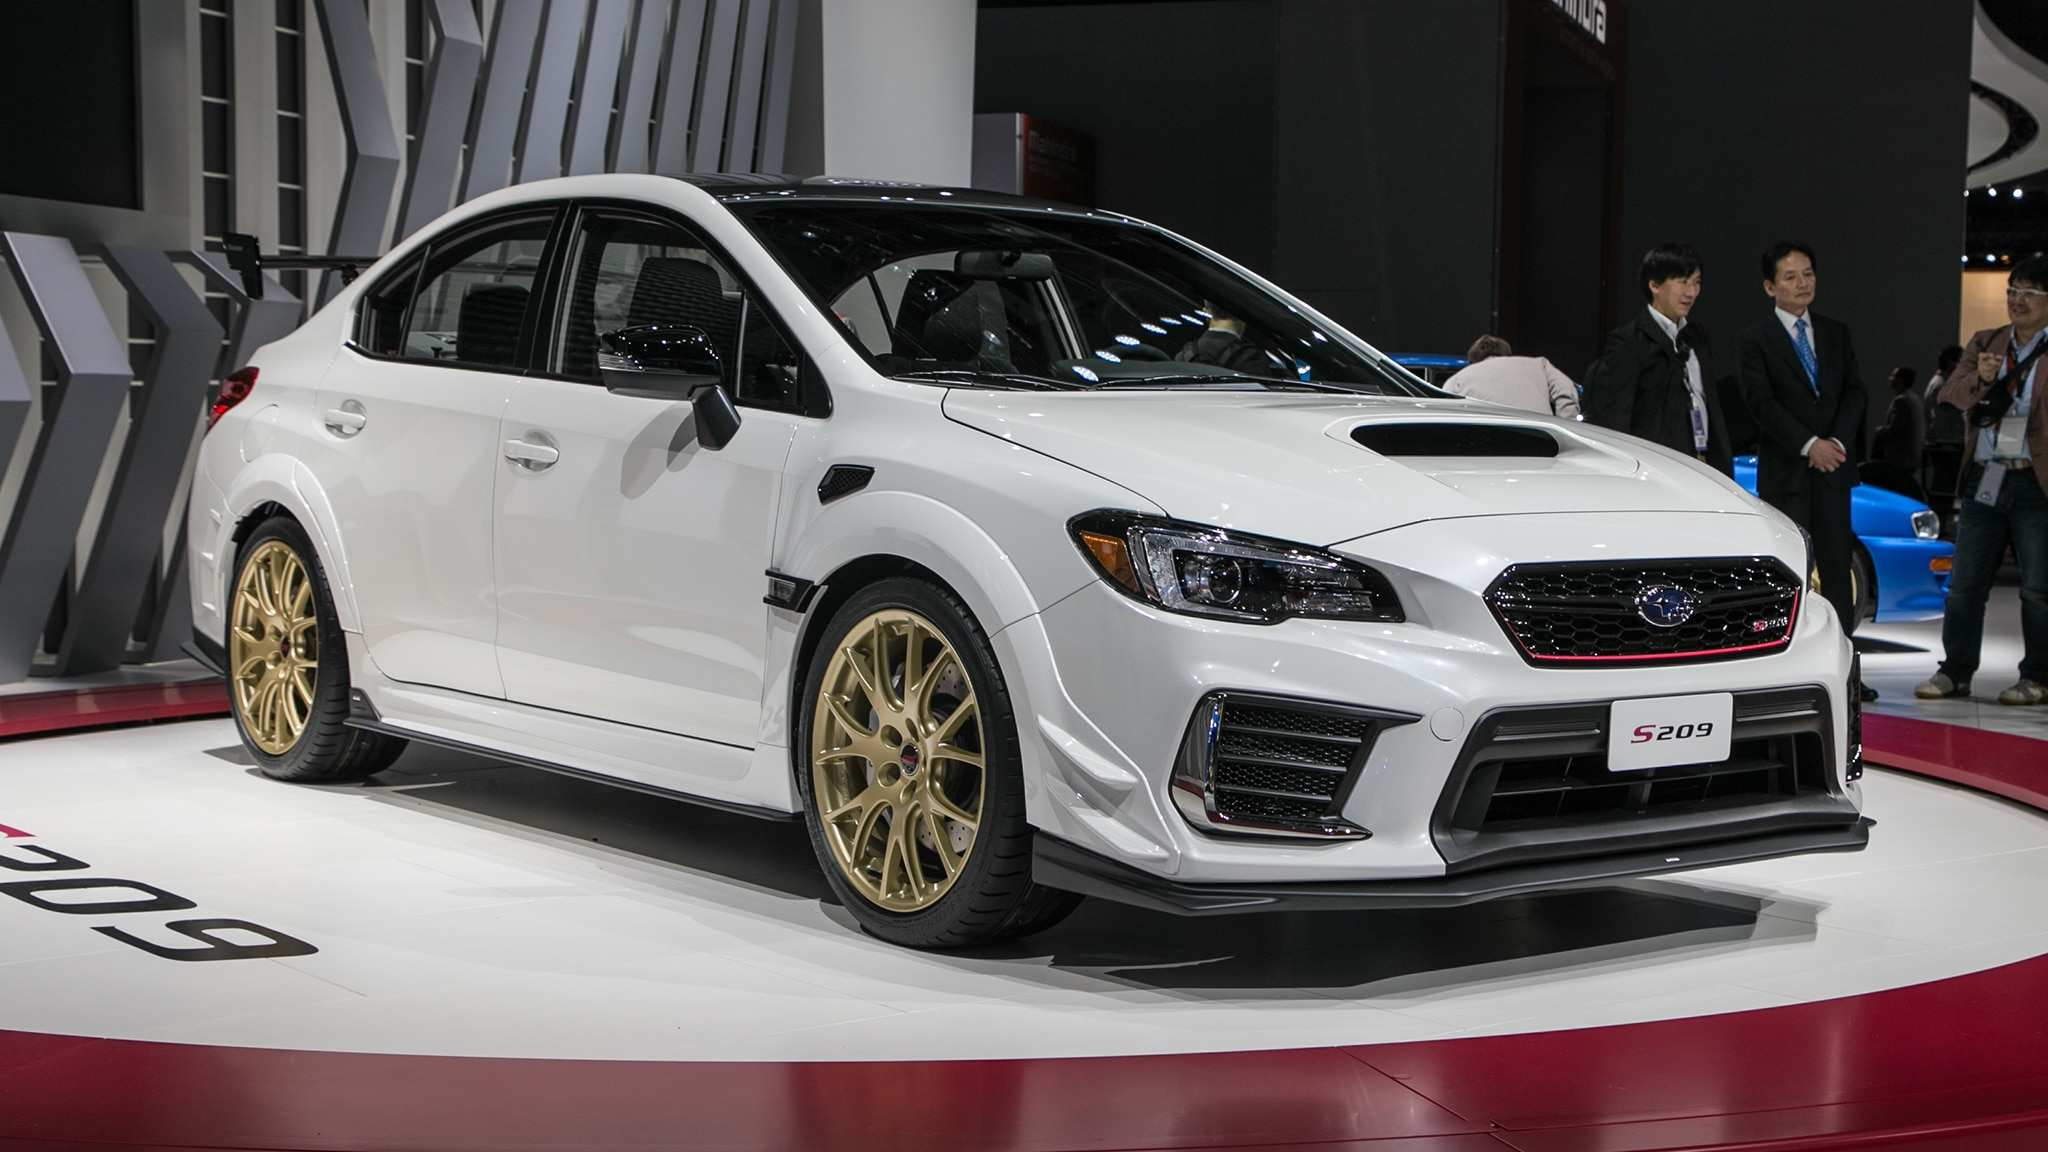 25 All New 2019 Subaru Wrx Sti Redesign and Concept for 2019 Subaru Wrx Sti